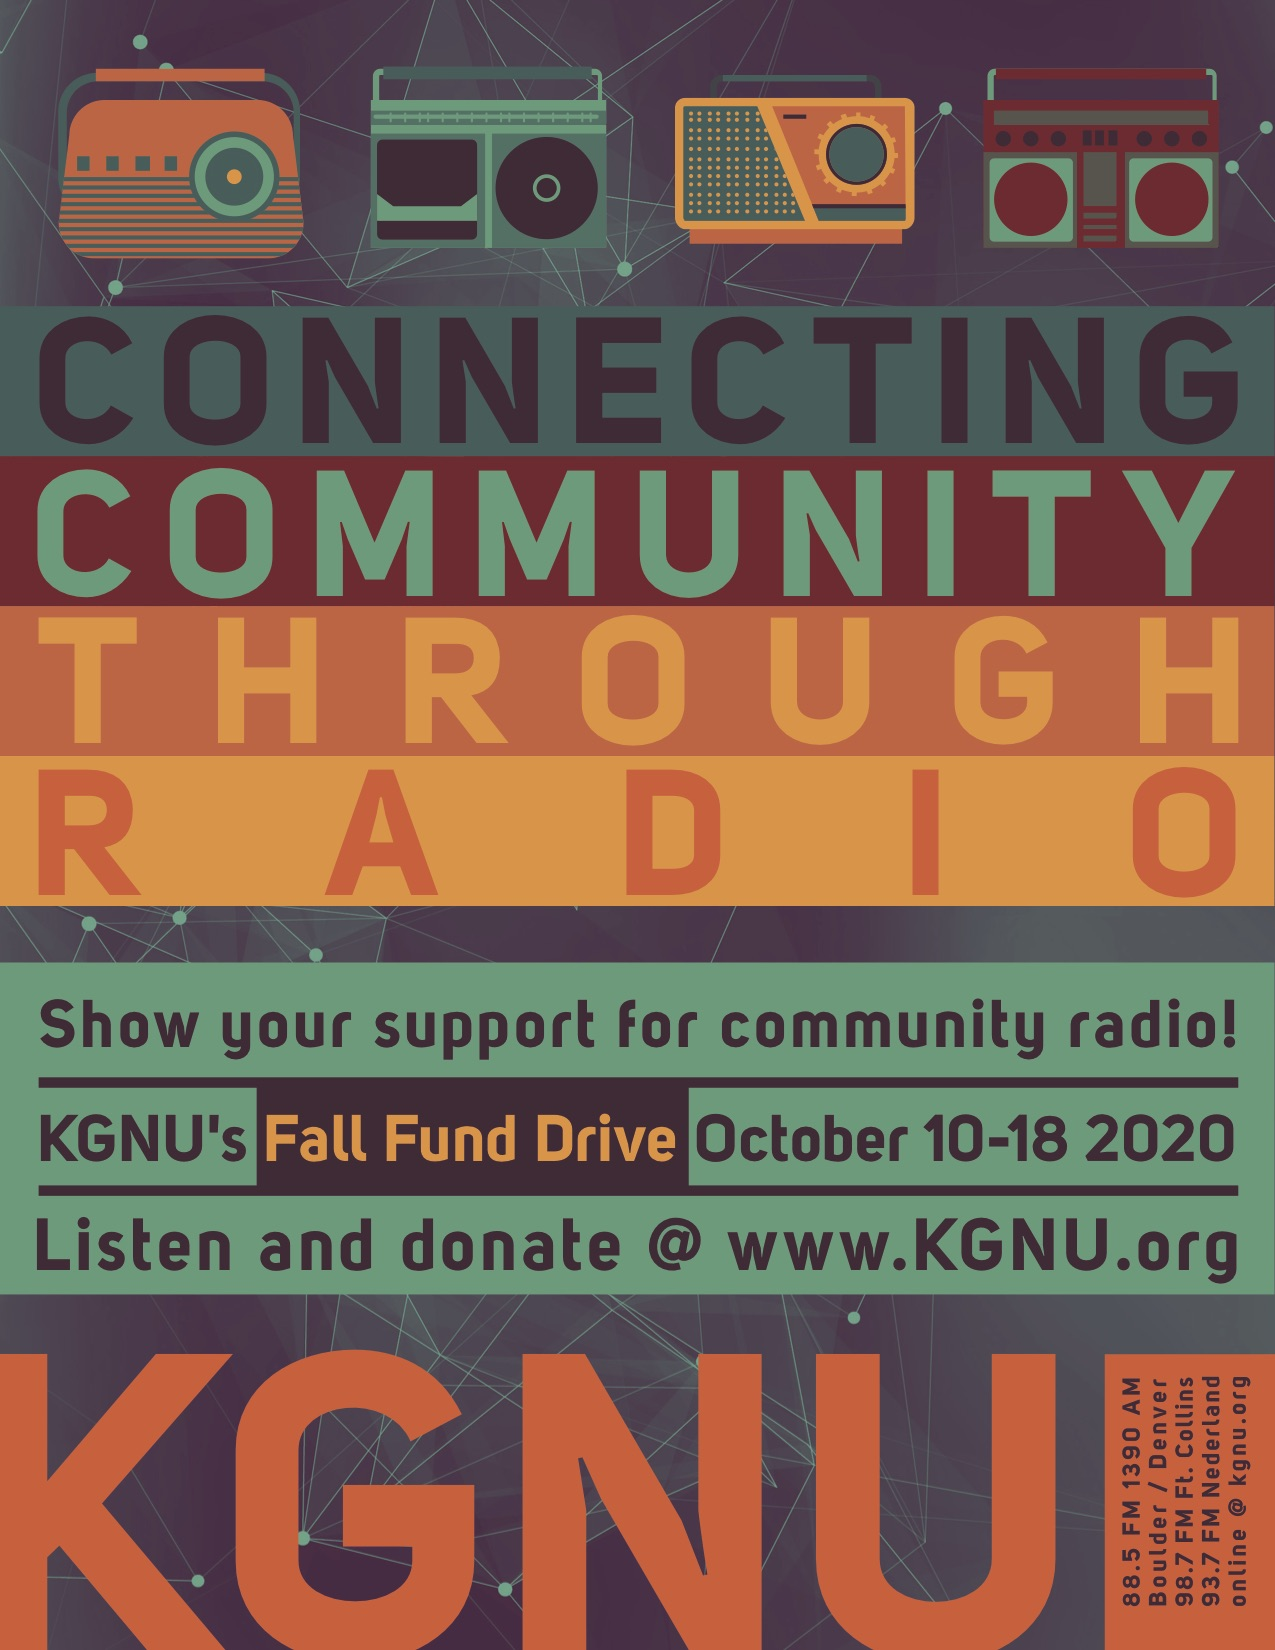 KGNU Fund Drive Music Specials - Fall 2020